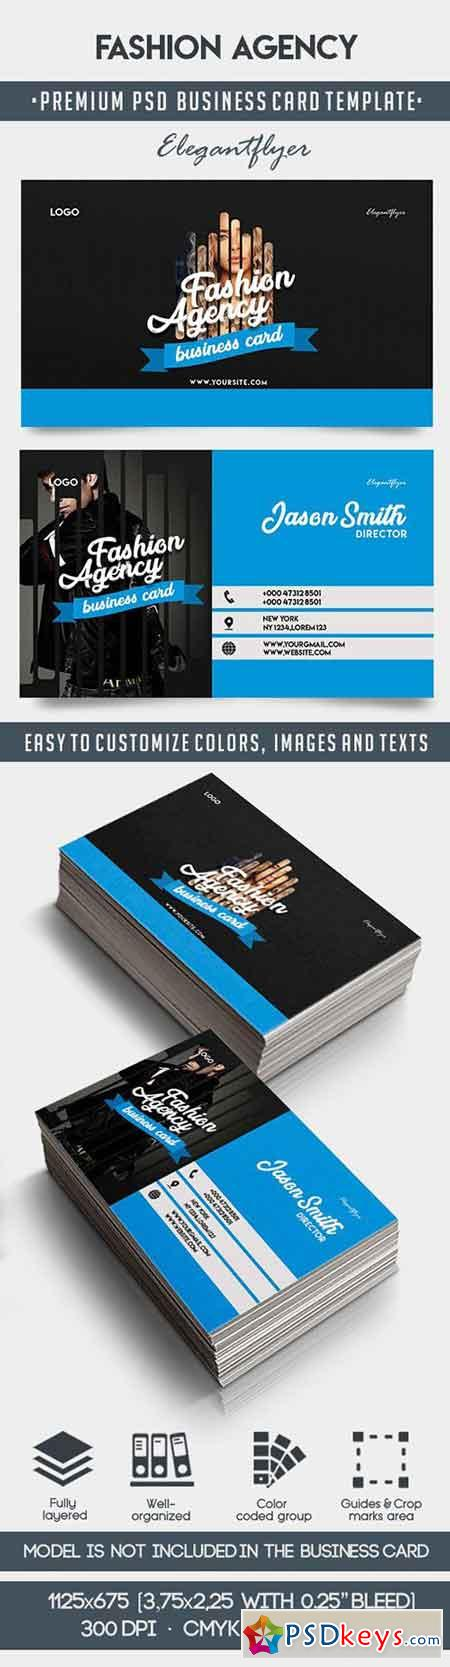 Fashion Agency – Premium Business Card Templates PSD